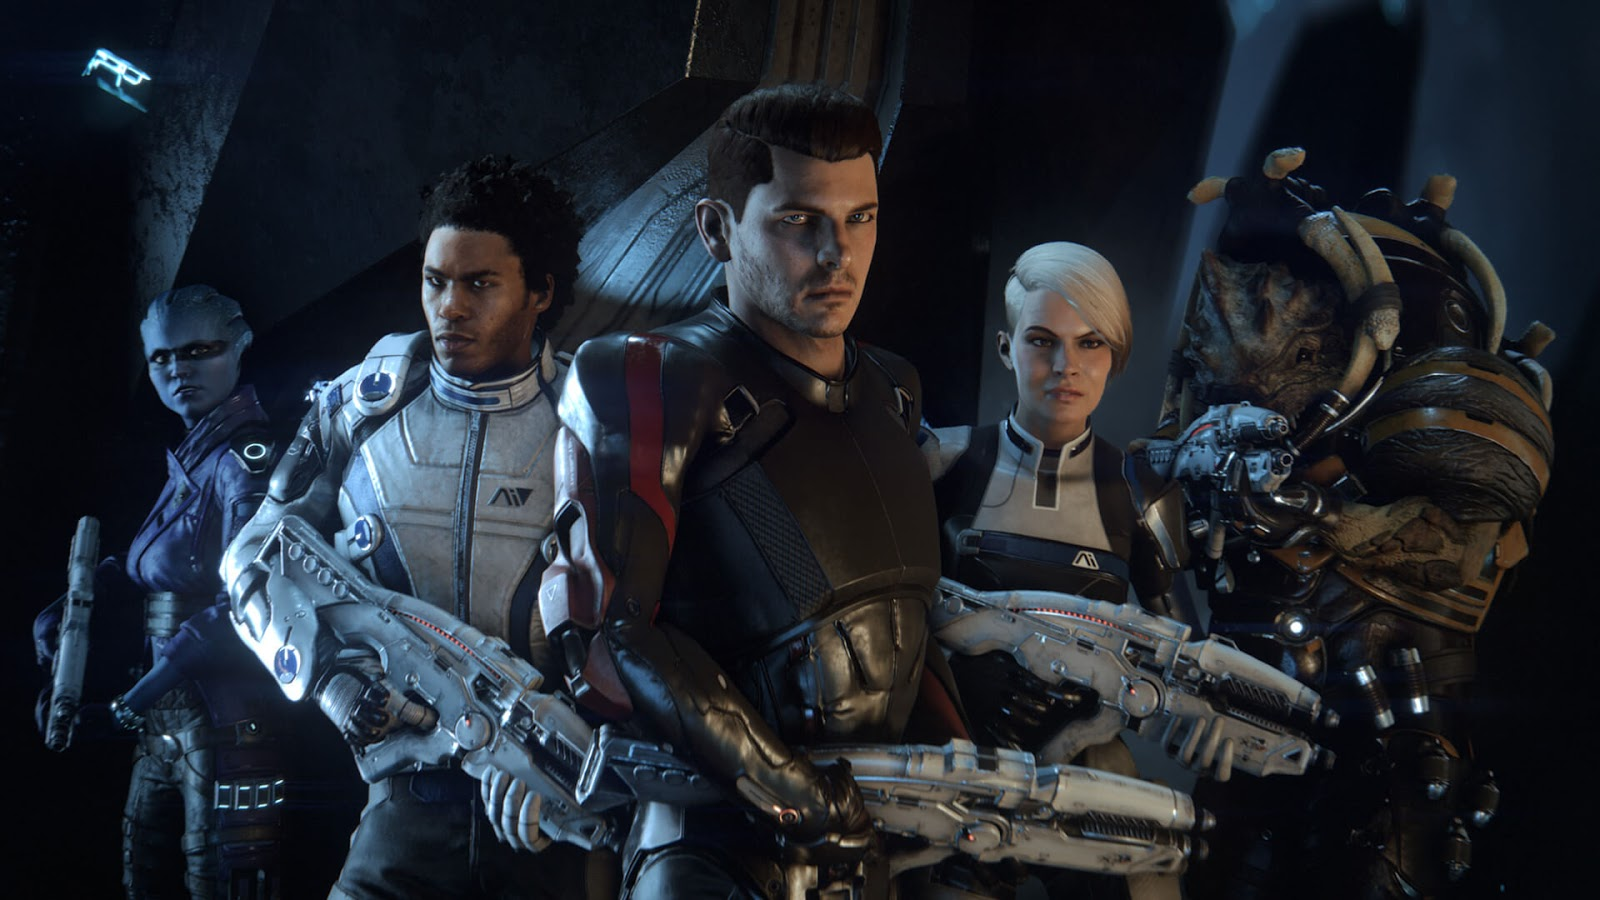 X5 Ghost Mass Effect Andromeda: Mass Effect Andromeda Patch Introduces Cutscene-only X5